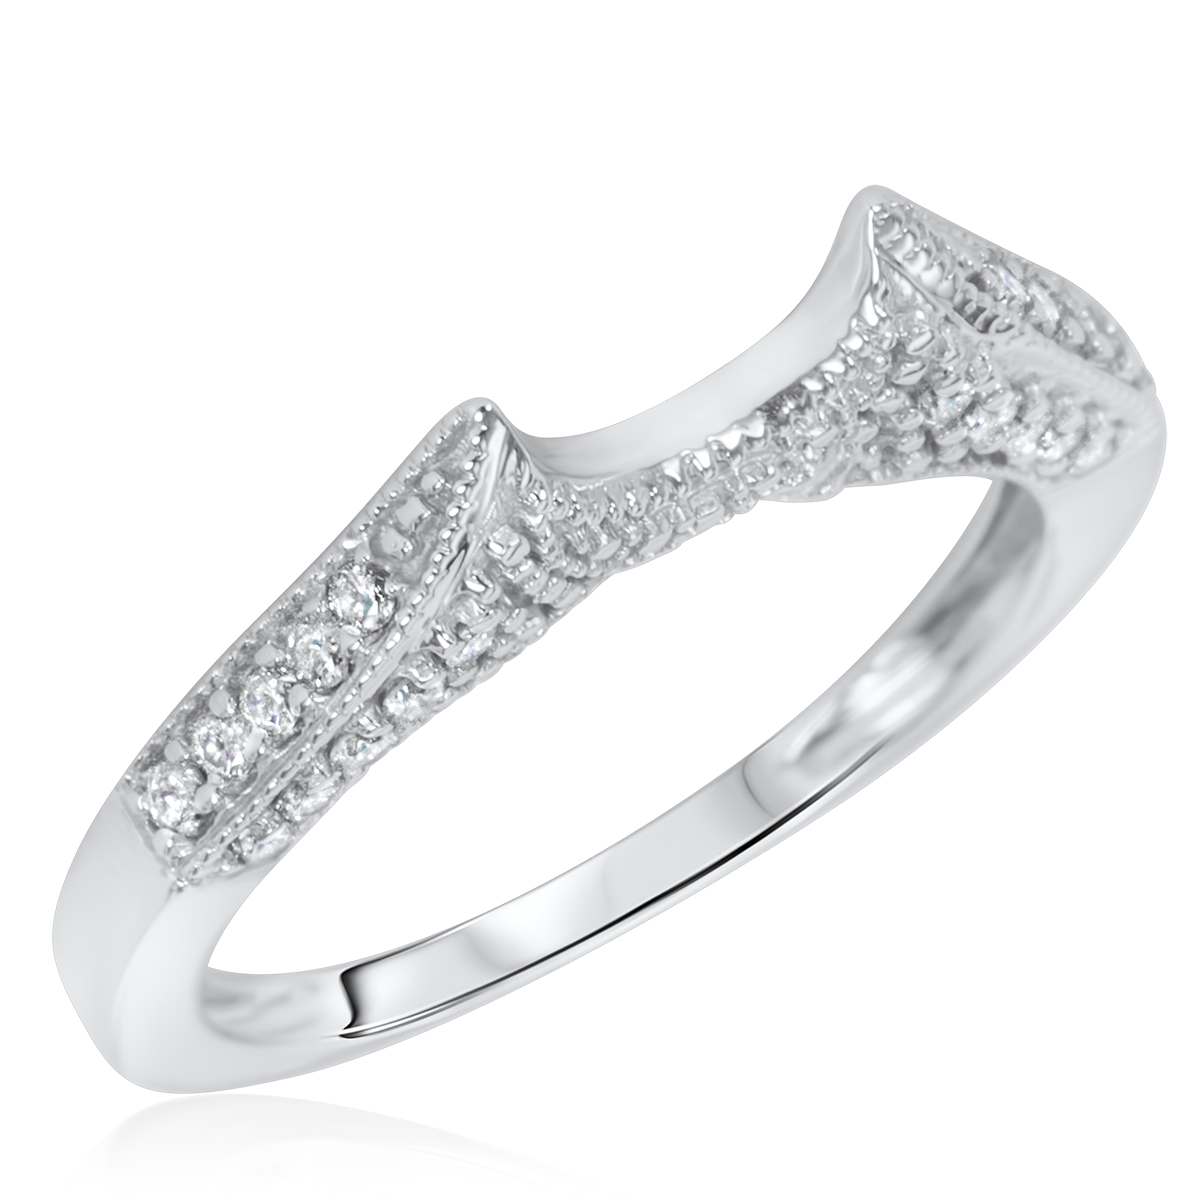 1/4 Carat T.W. Diamond Women's Wedding Ring 10K White Gold ...